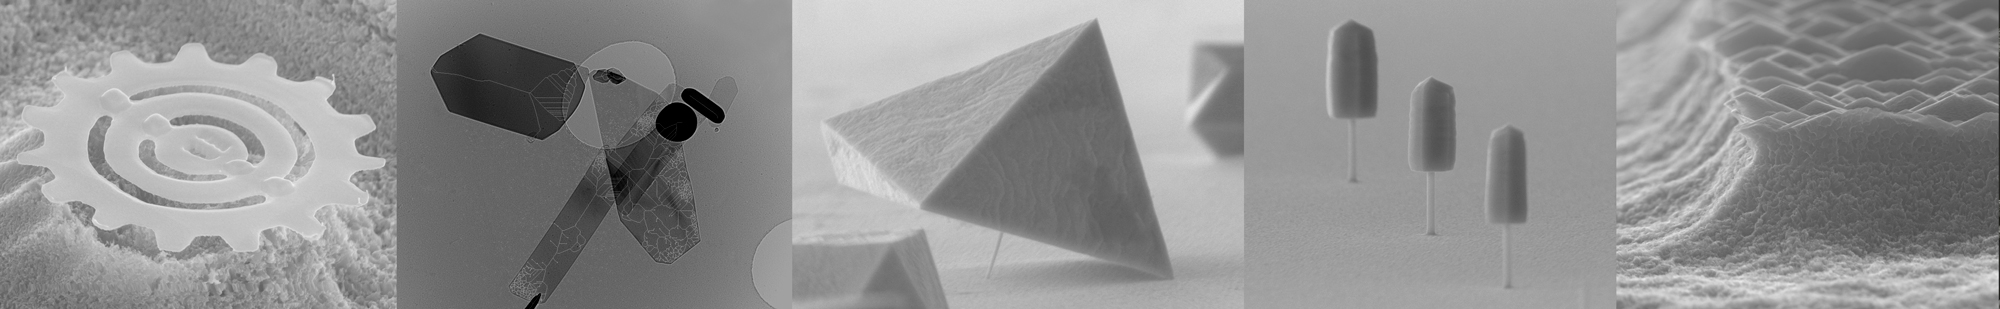 Image of KNI nanostructures